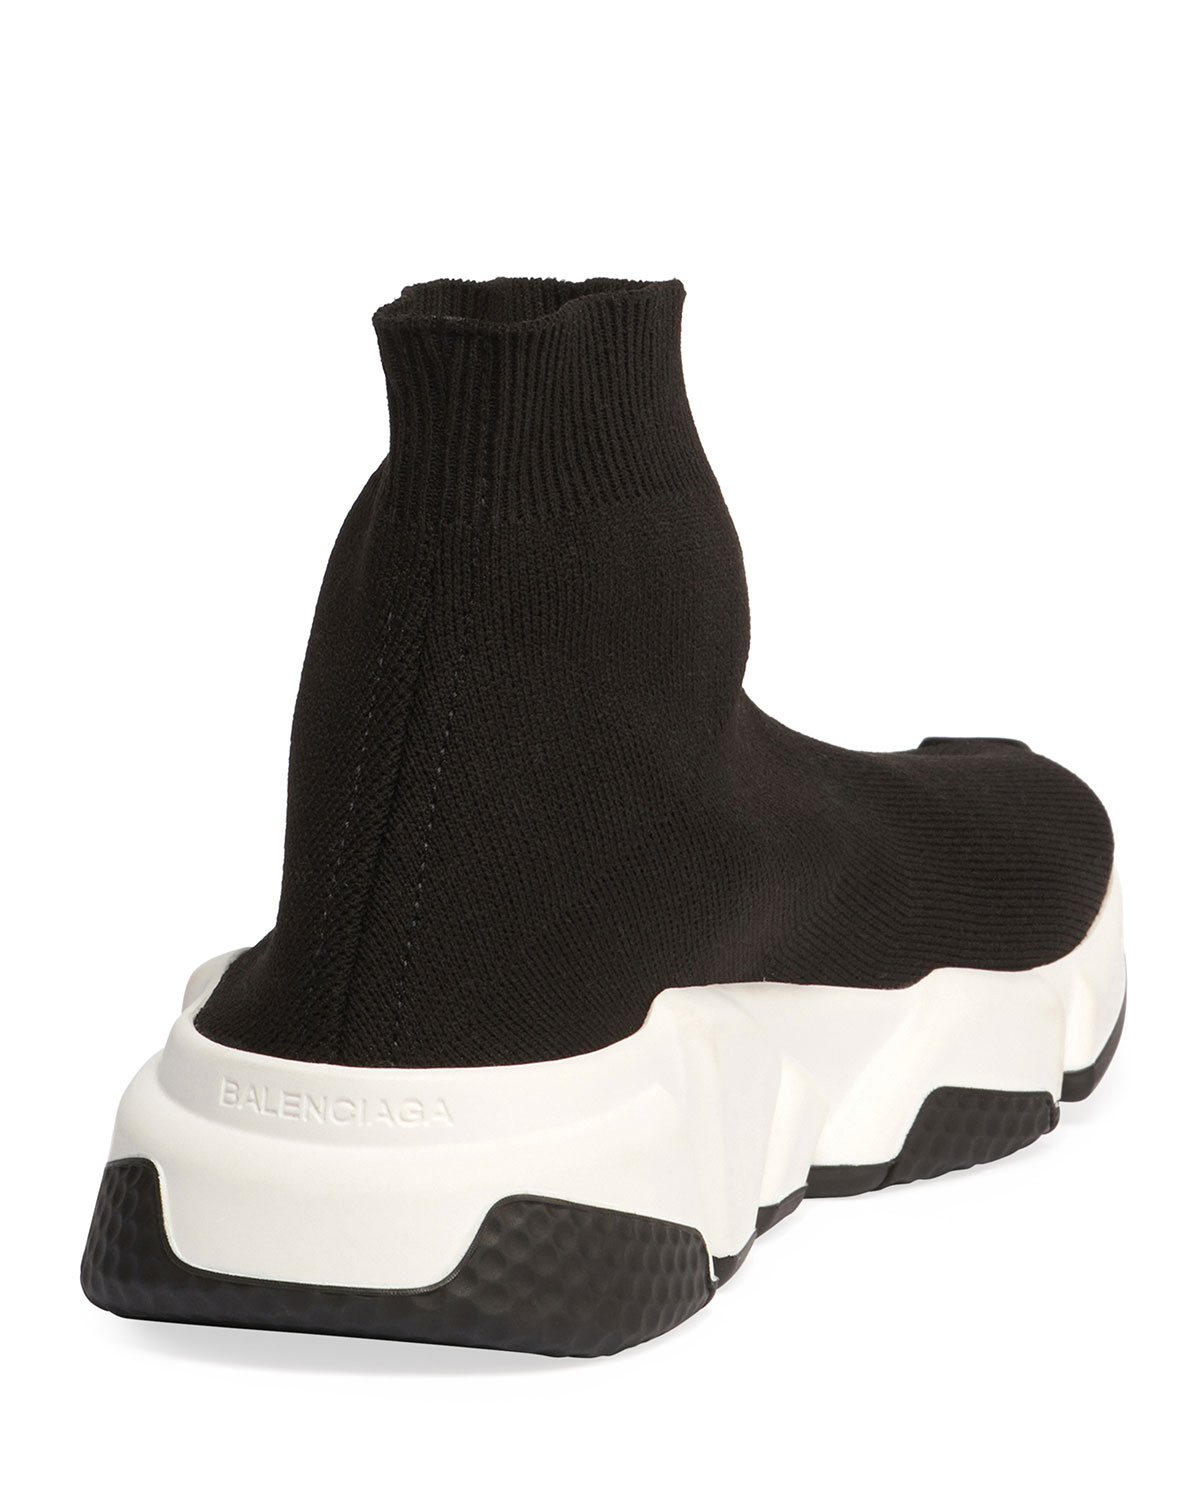 6d1daf07d20 Balenciaga Stretch-Knit High-Top Trainer, Noir | Neiman Marcus